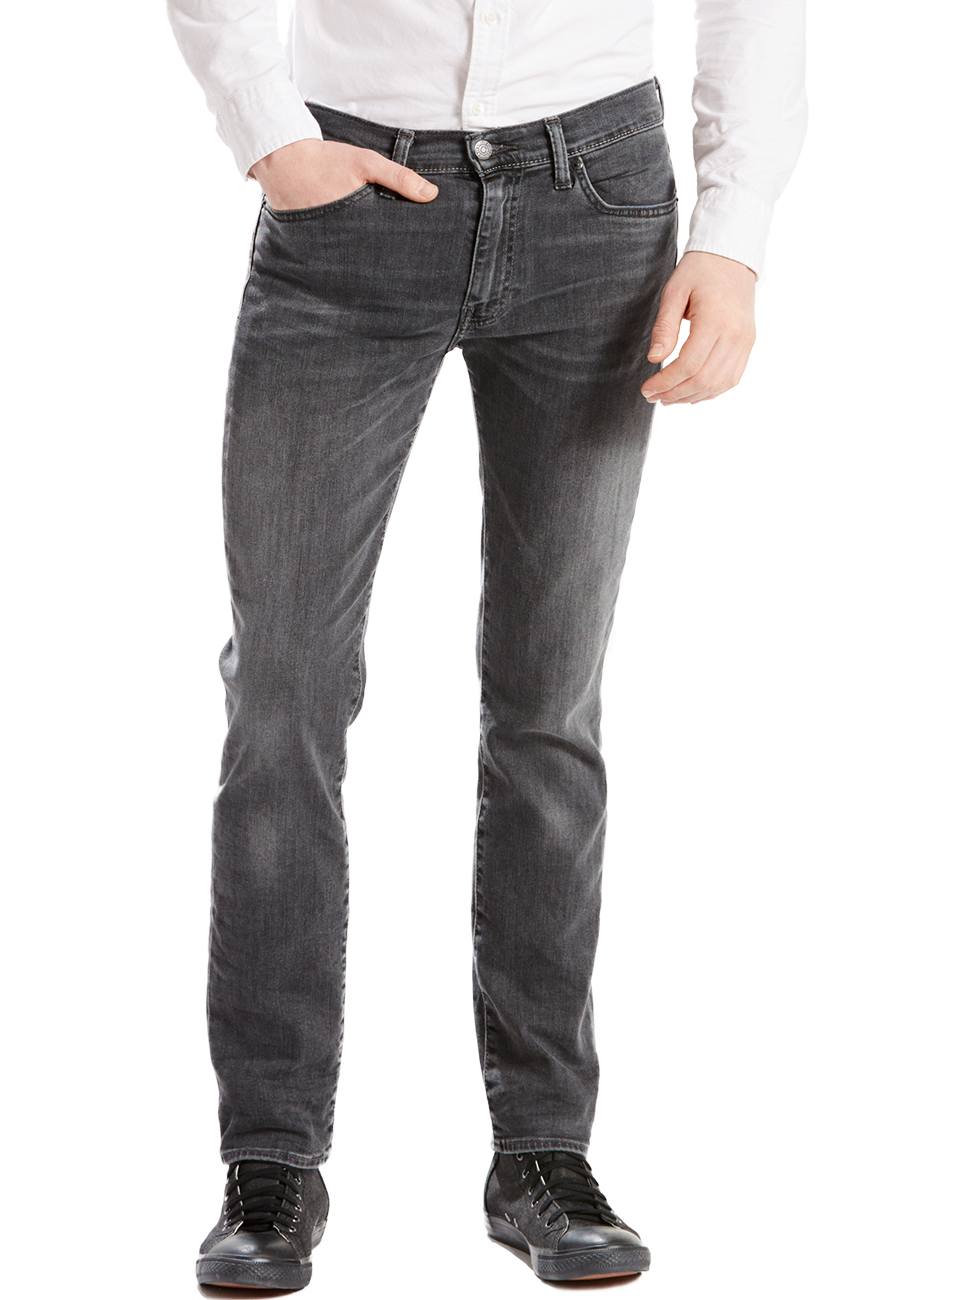 online retailer 39675 51245 Levis® Herren Jeans 511® - Slim Fit - Grau - Headed East